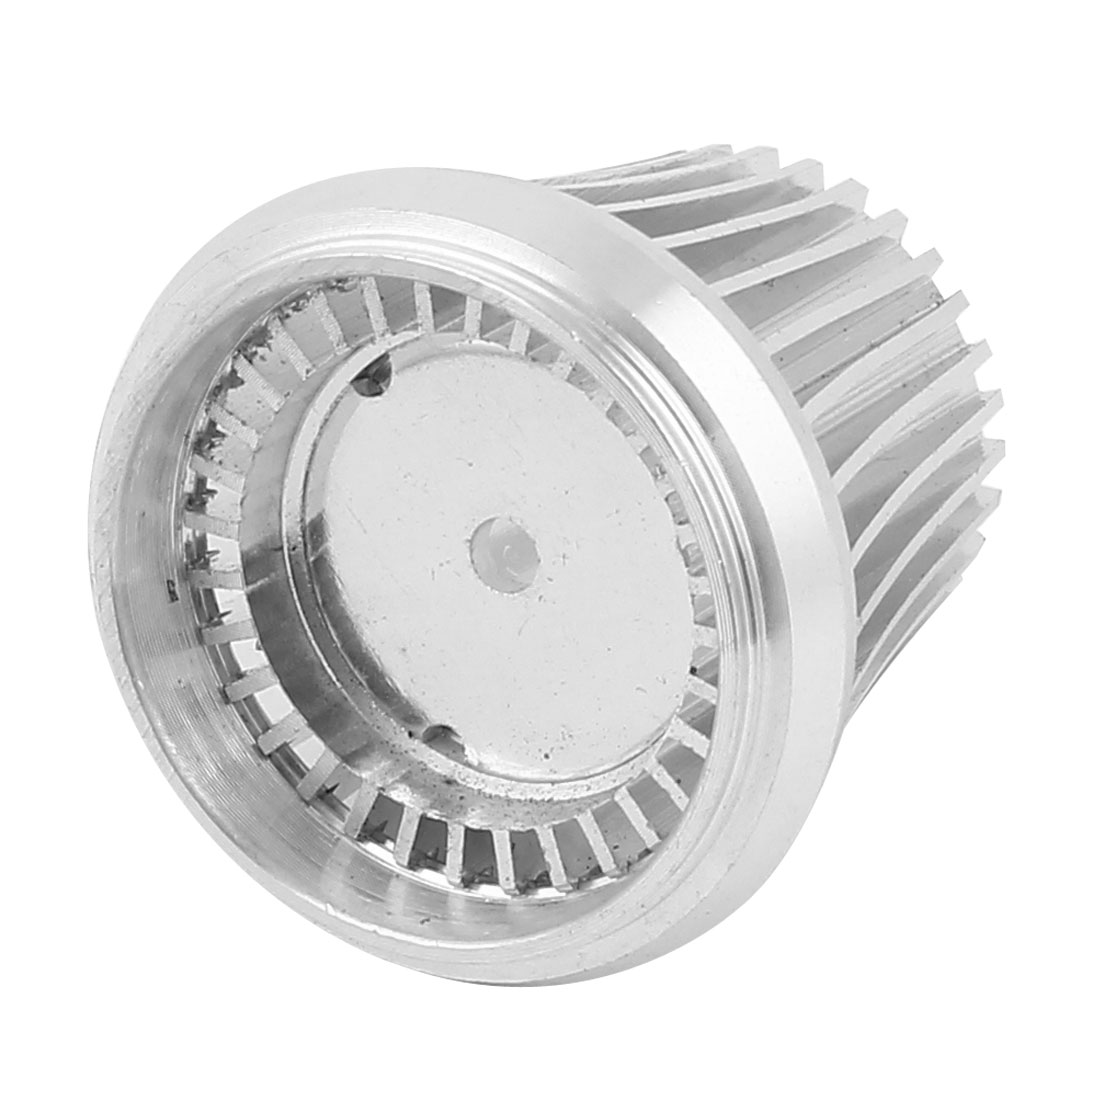 Heat Dissipation 35mm Height Aluminum Heat Sink for LED Bulb Light Cooling